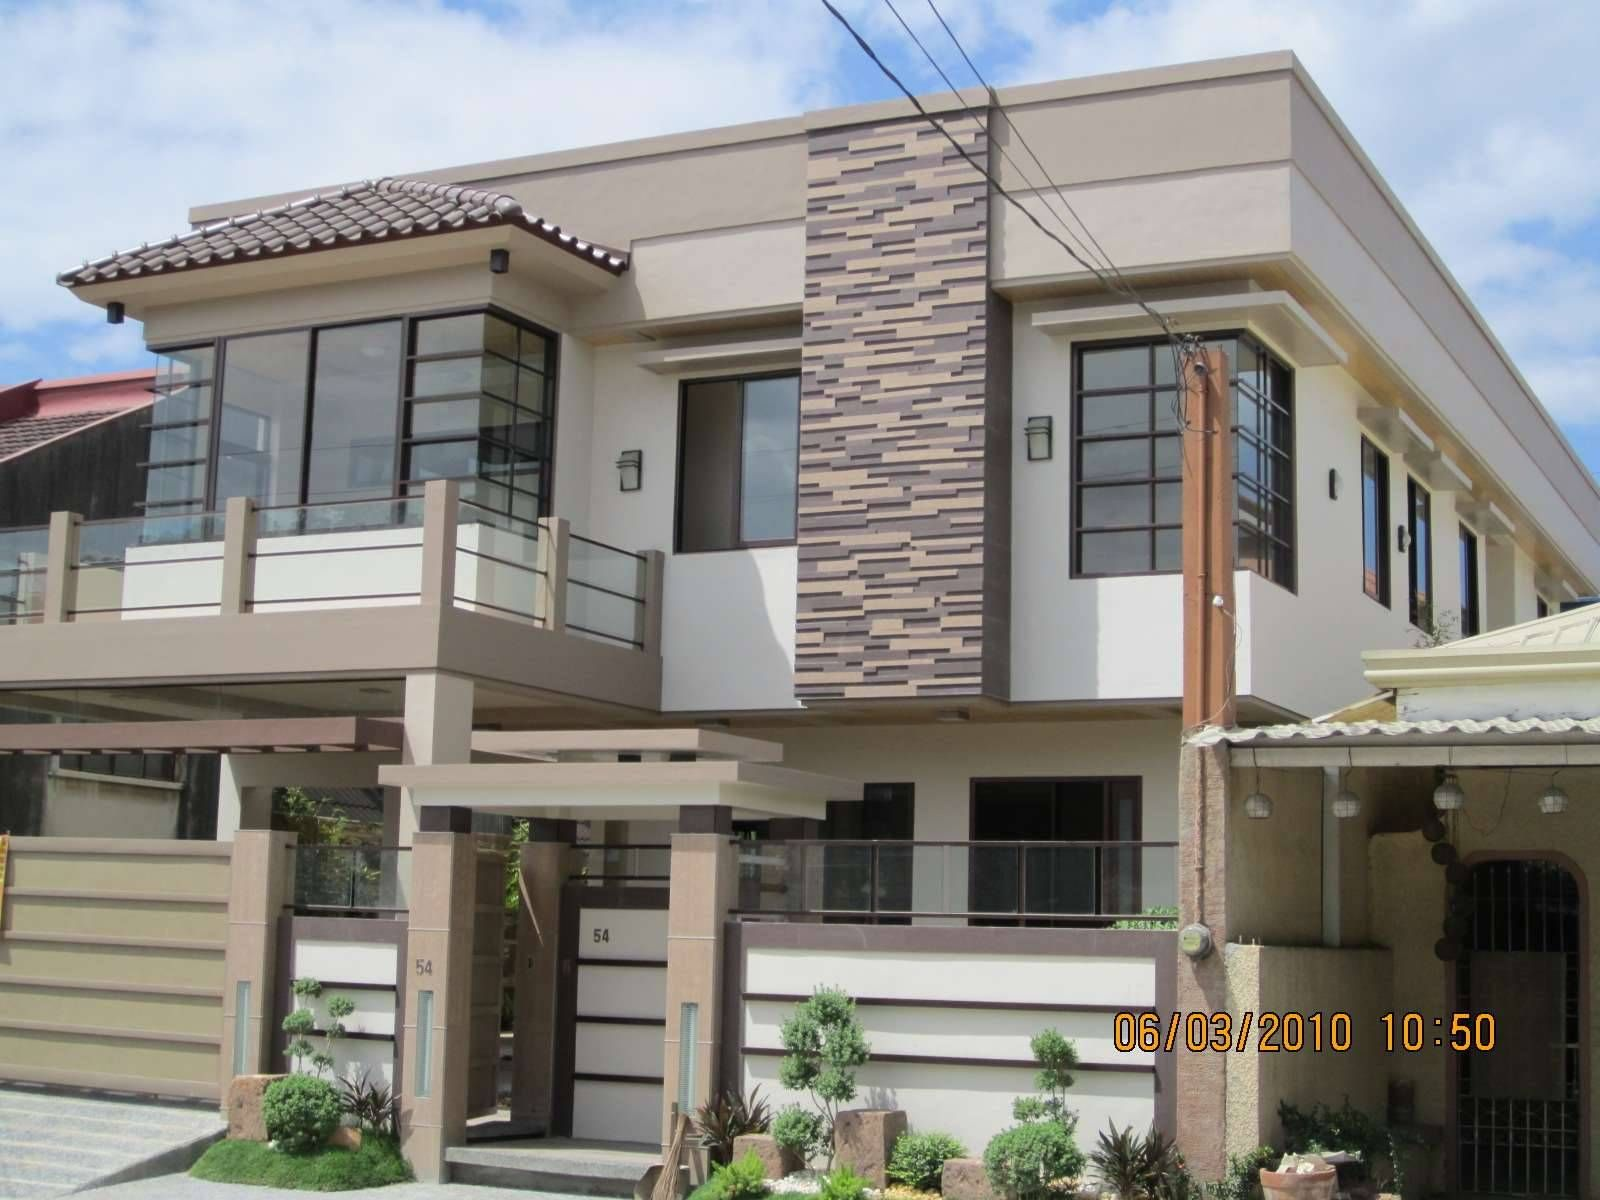 Philippines modern house exterior design dream house for Redesign house exterior